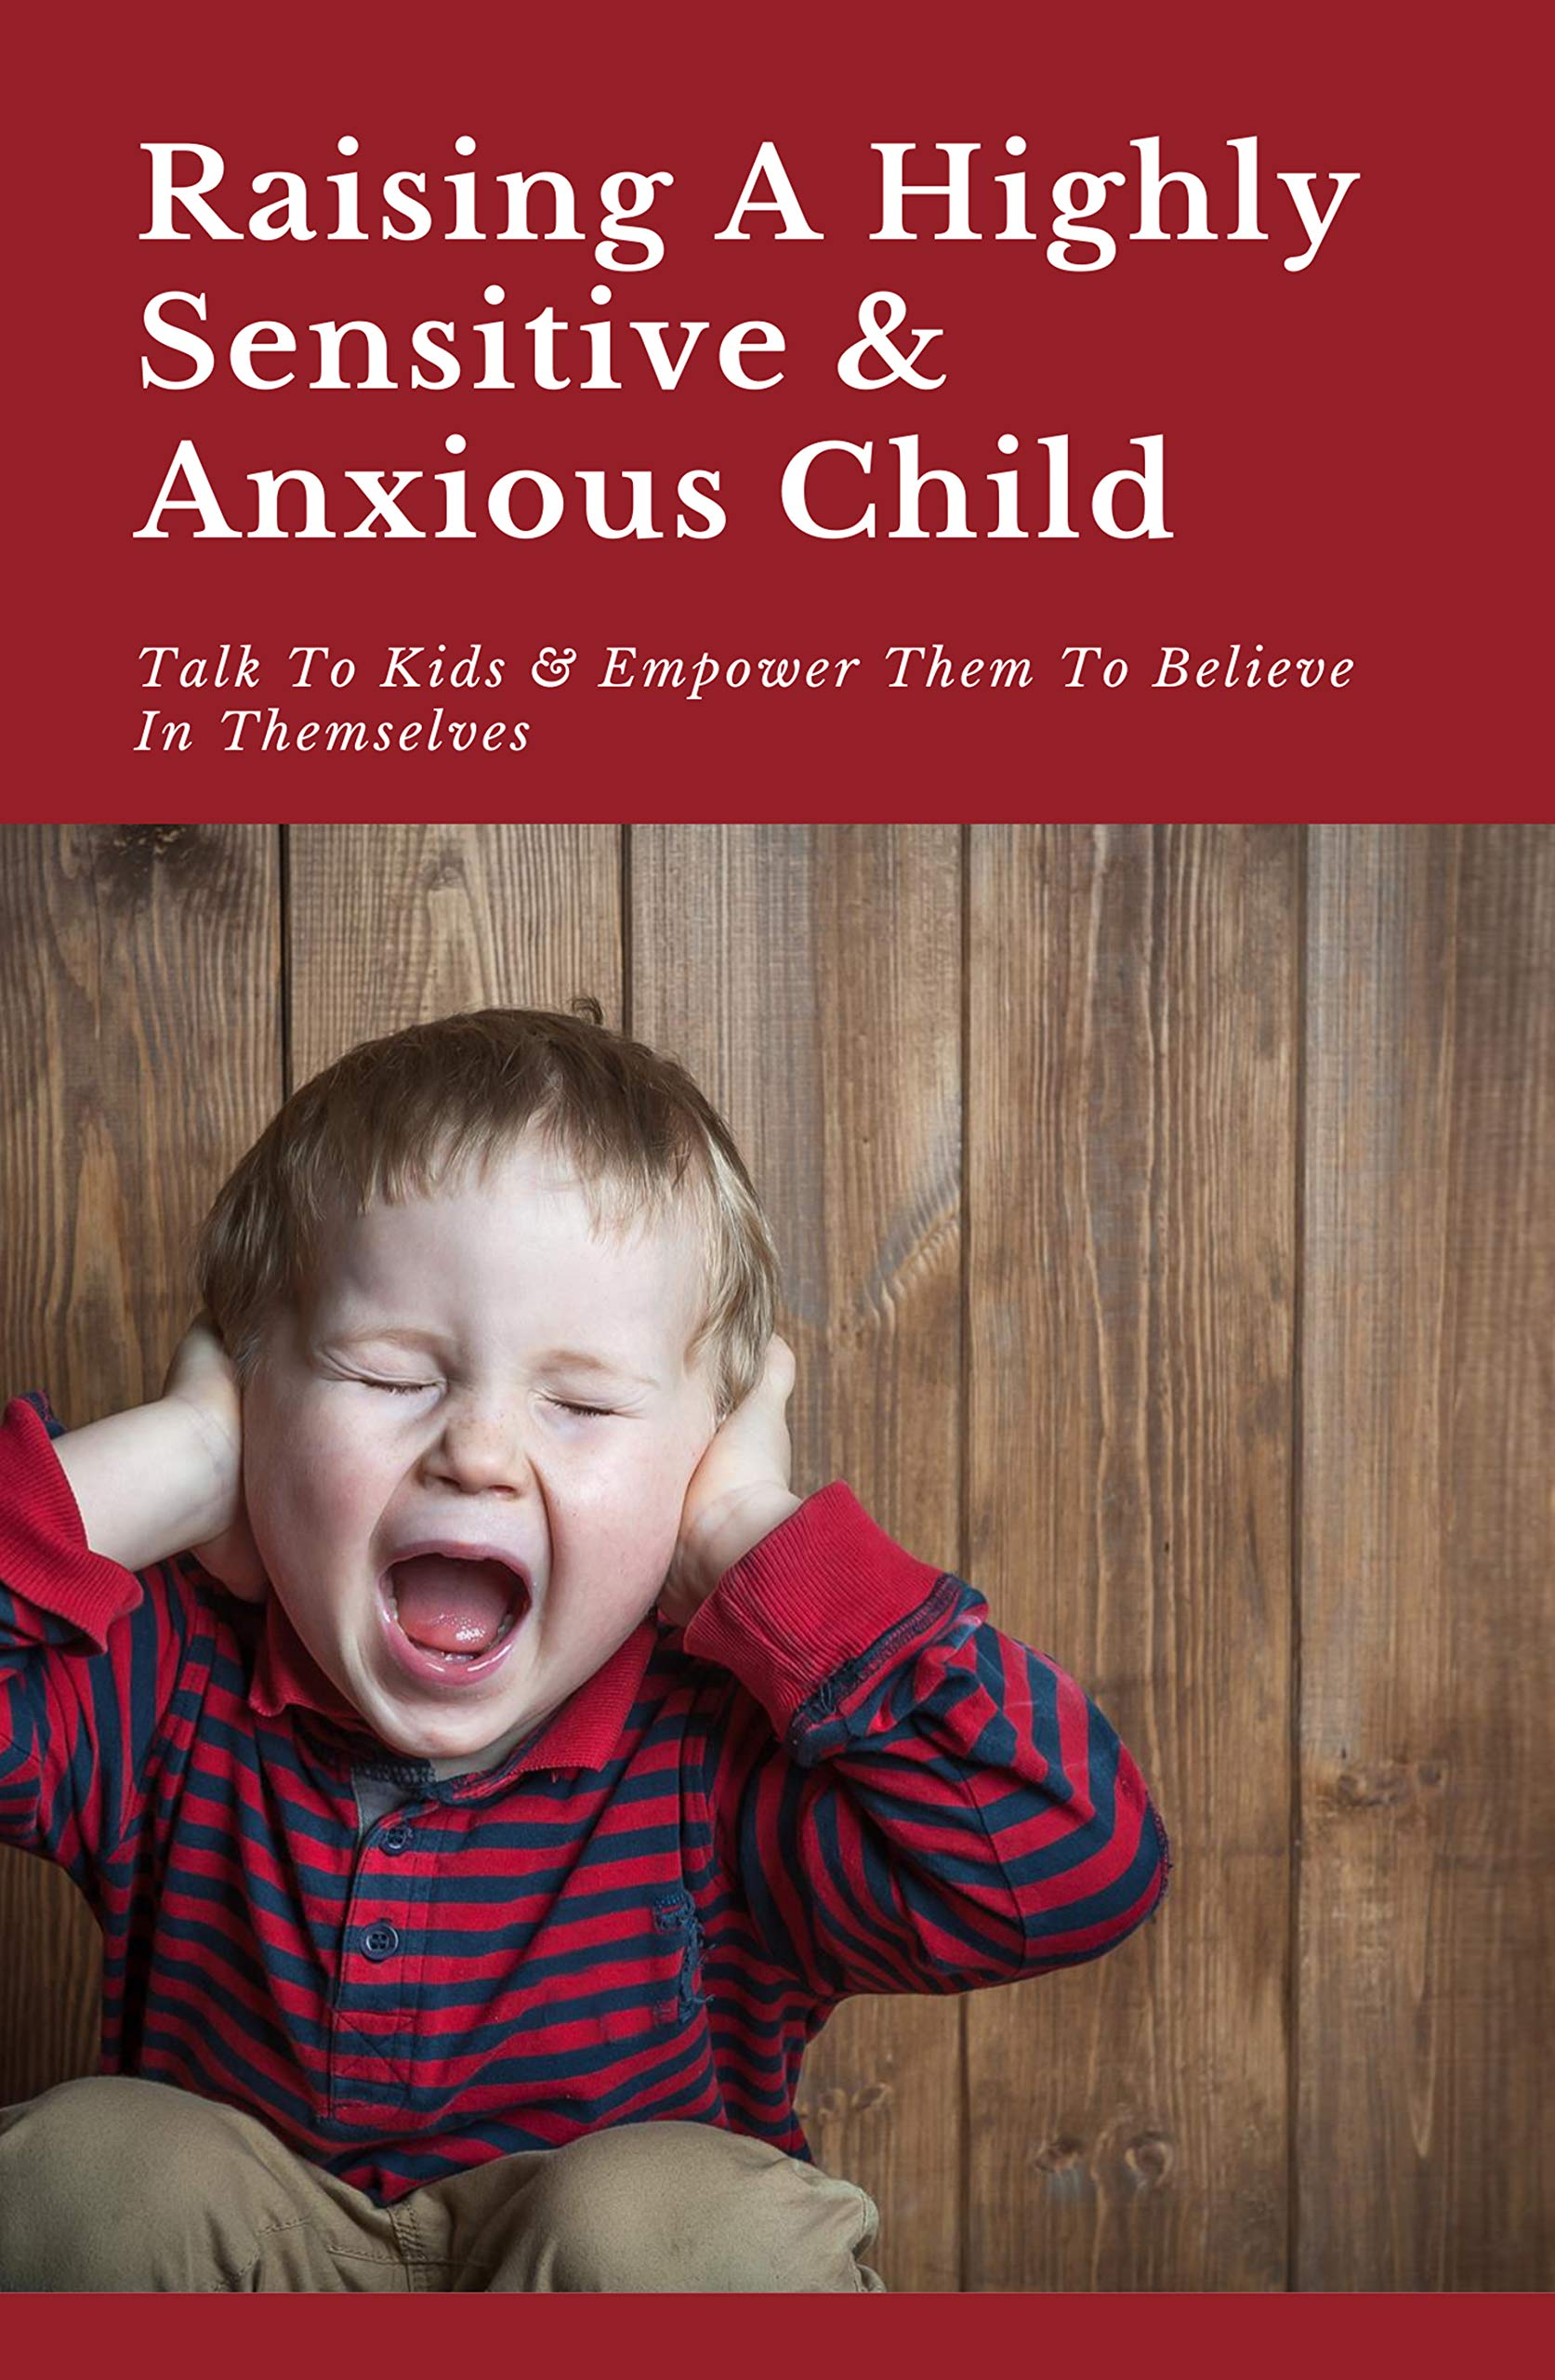 Raising A Highly Sensitive & Anxious Child: Talk To Kids & Empower Them To Believe In Themselves: Parenting Strategies